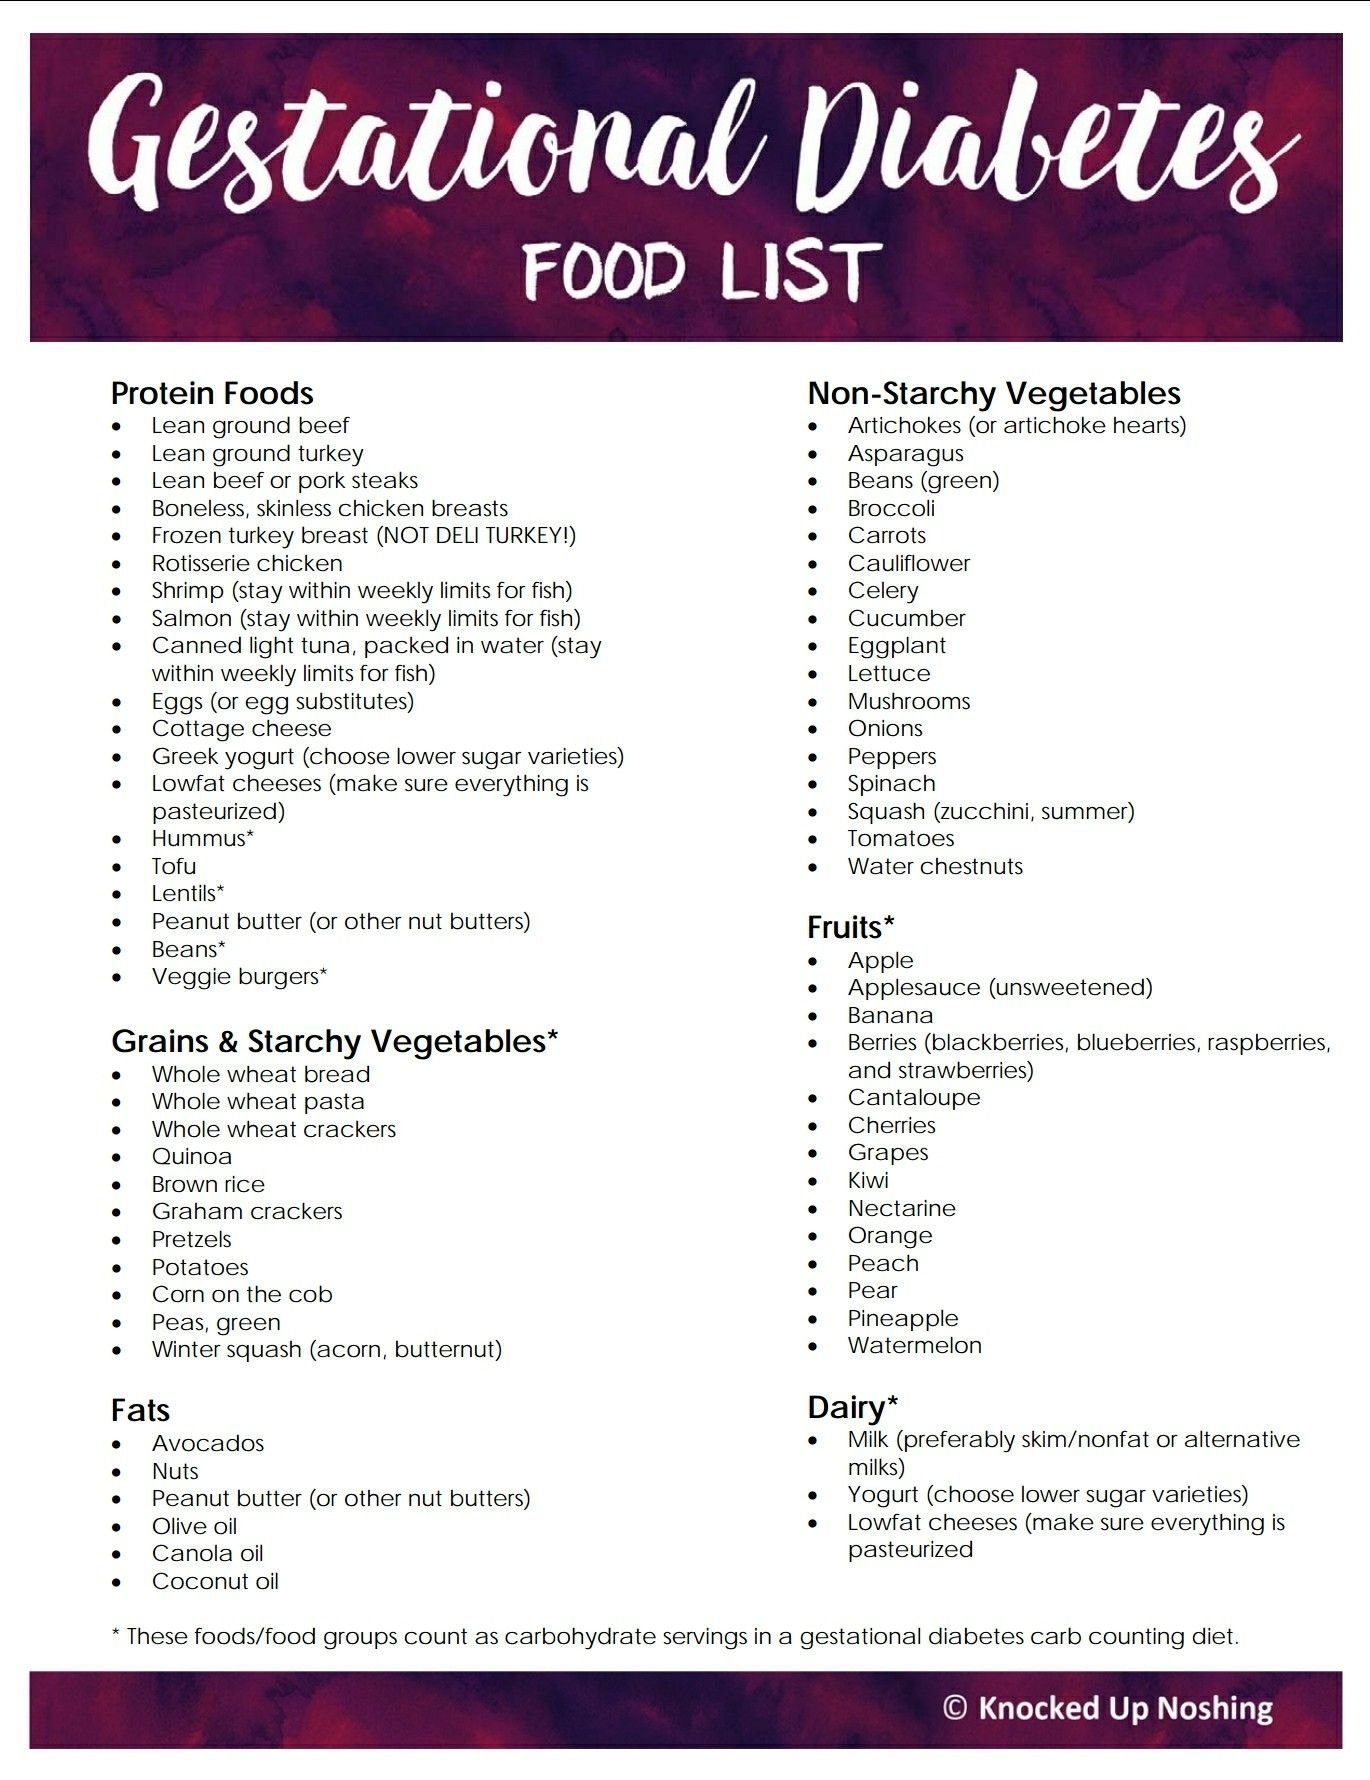 10 Awesome Gestational Diabetes Meal Plan Ideas